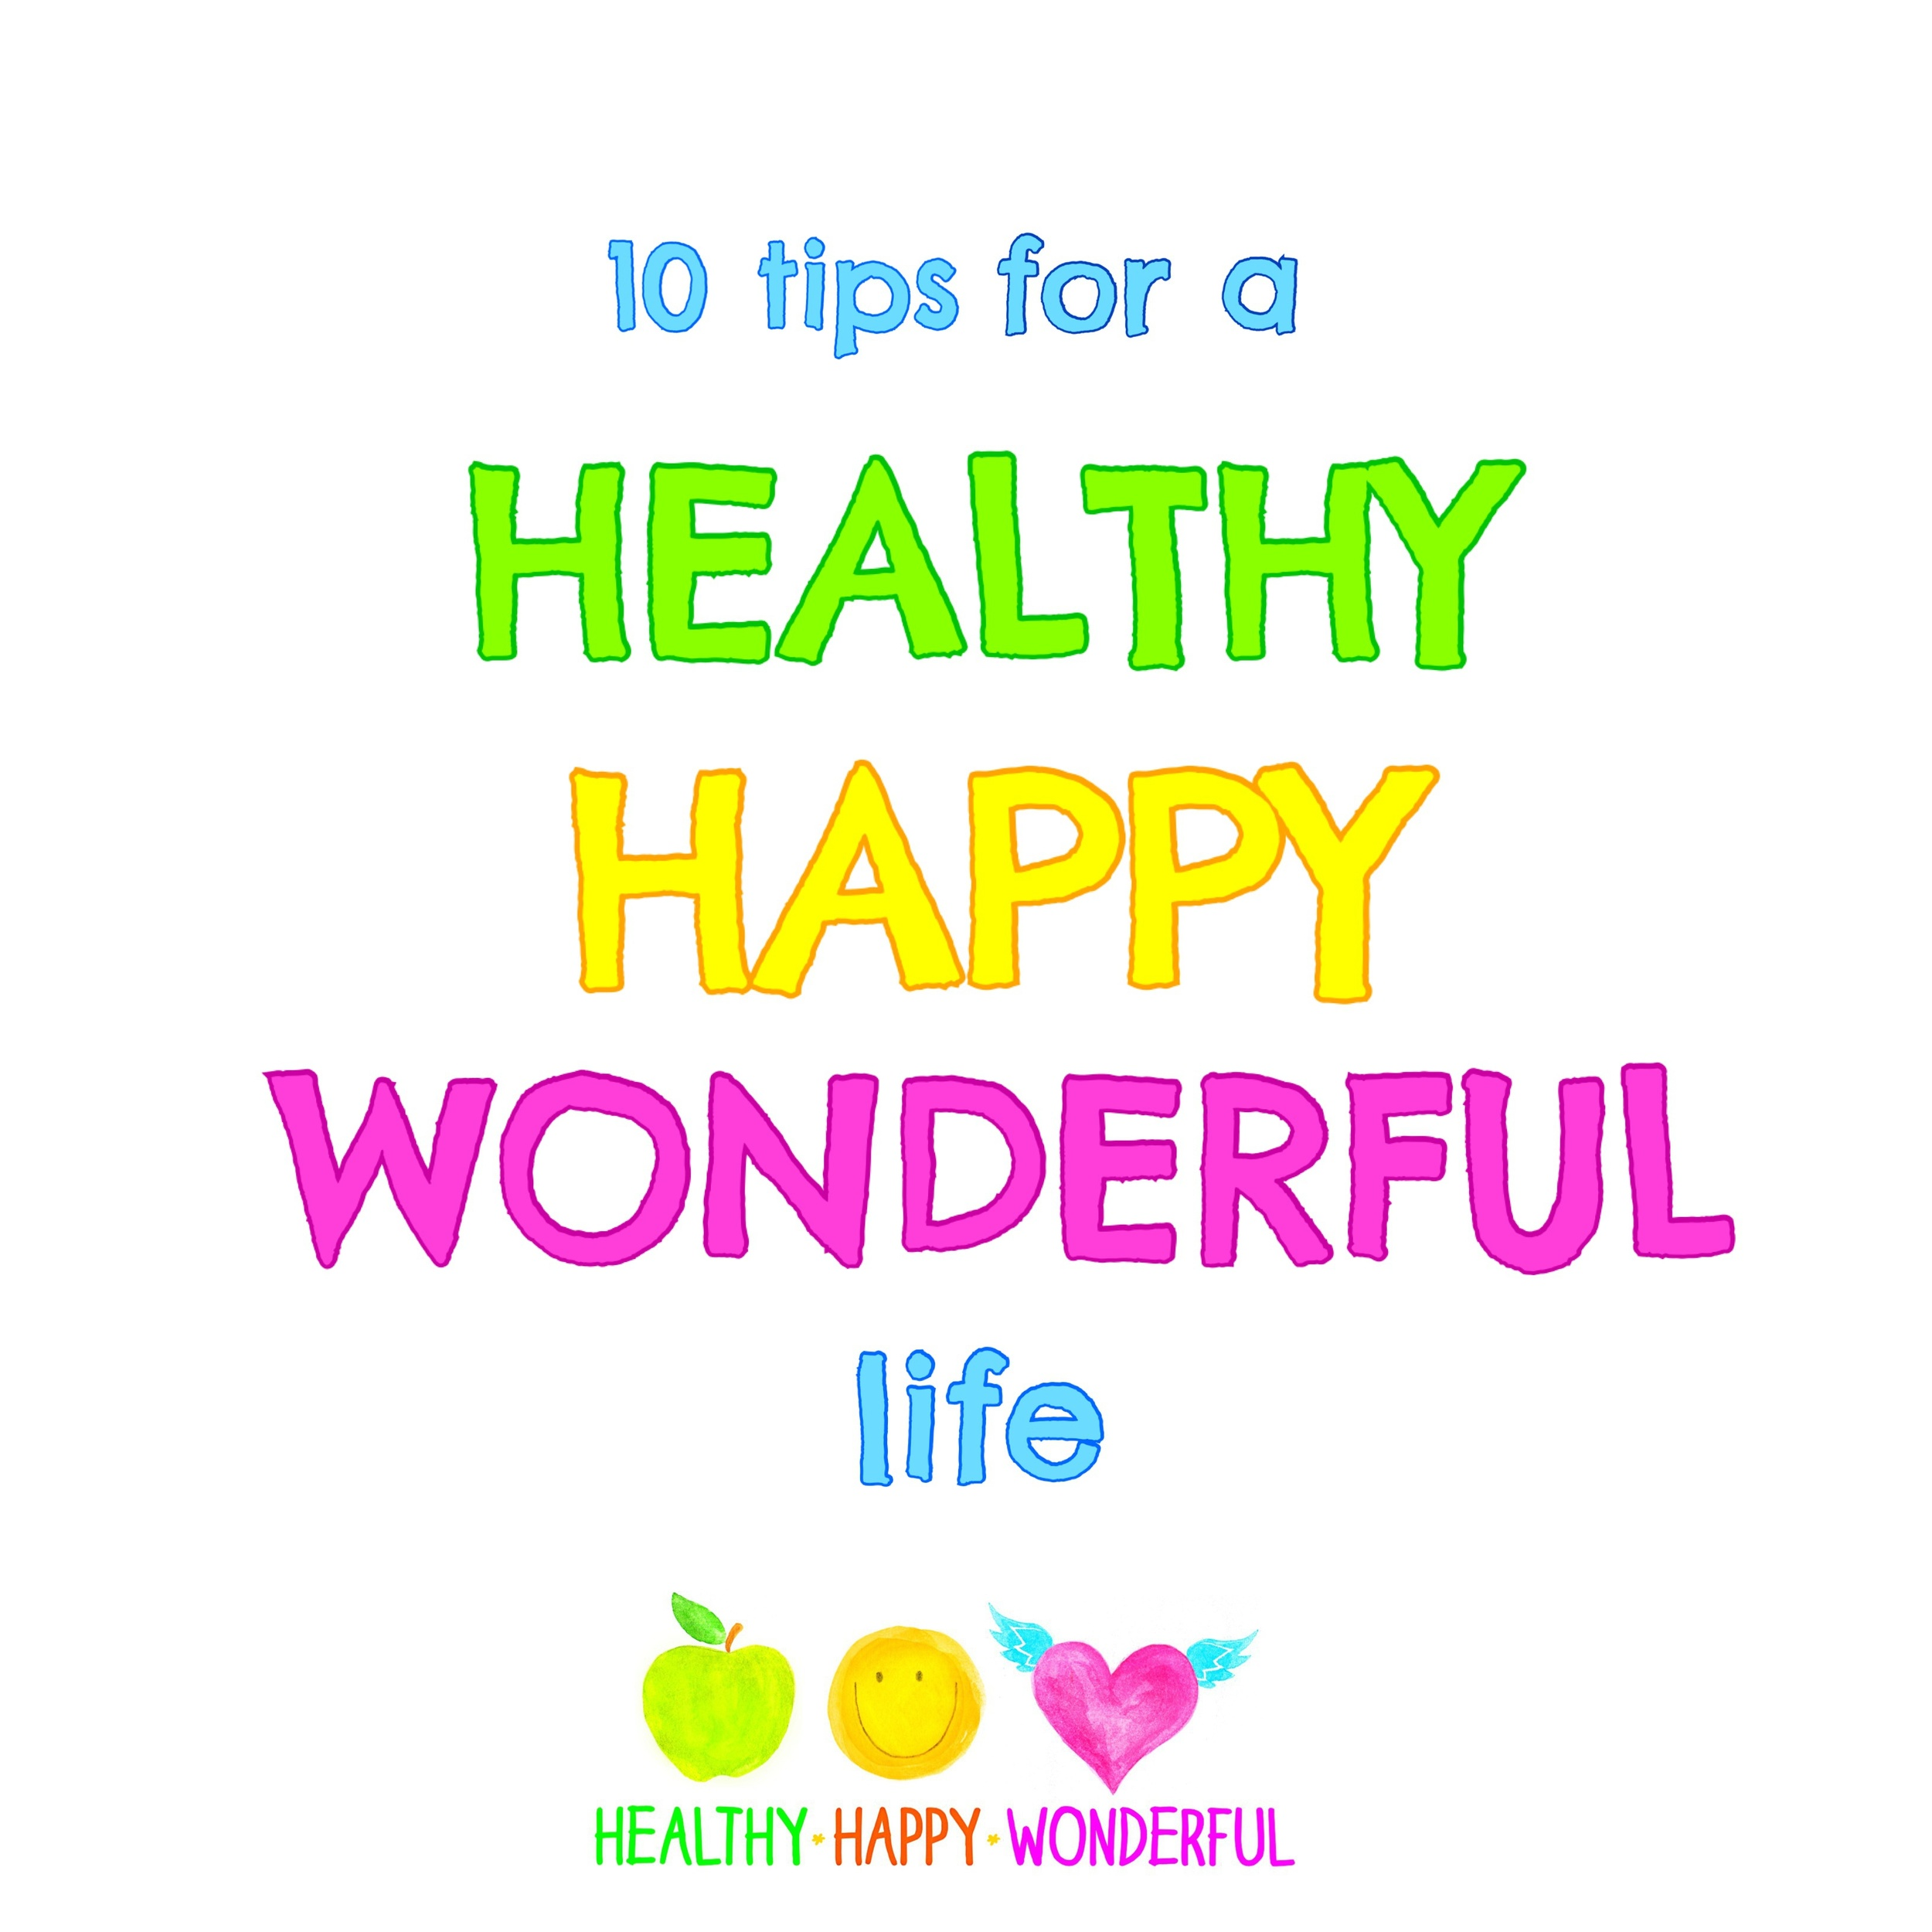 10 tips for a healthy happy wonderful life!